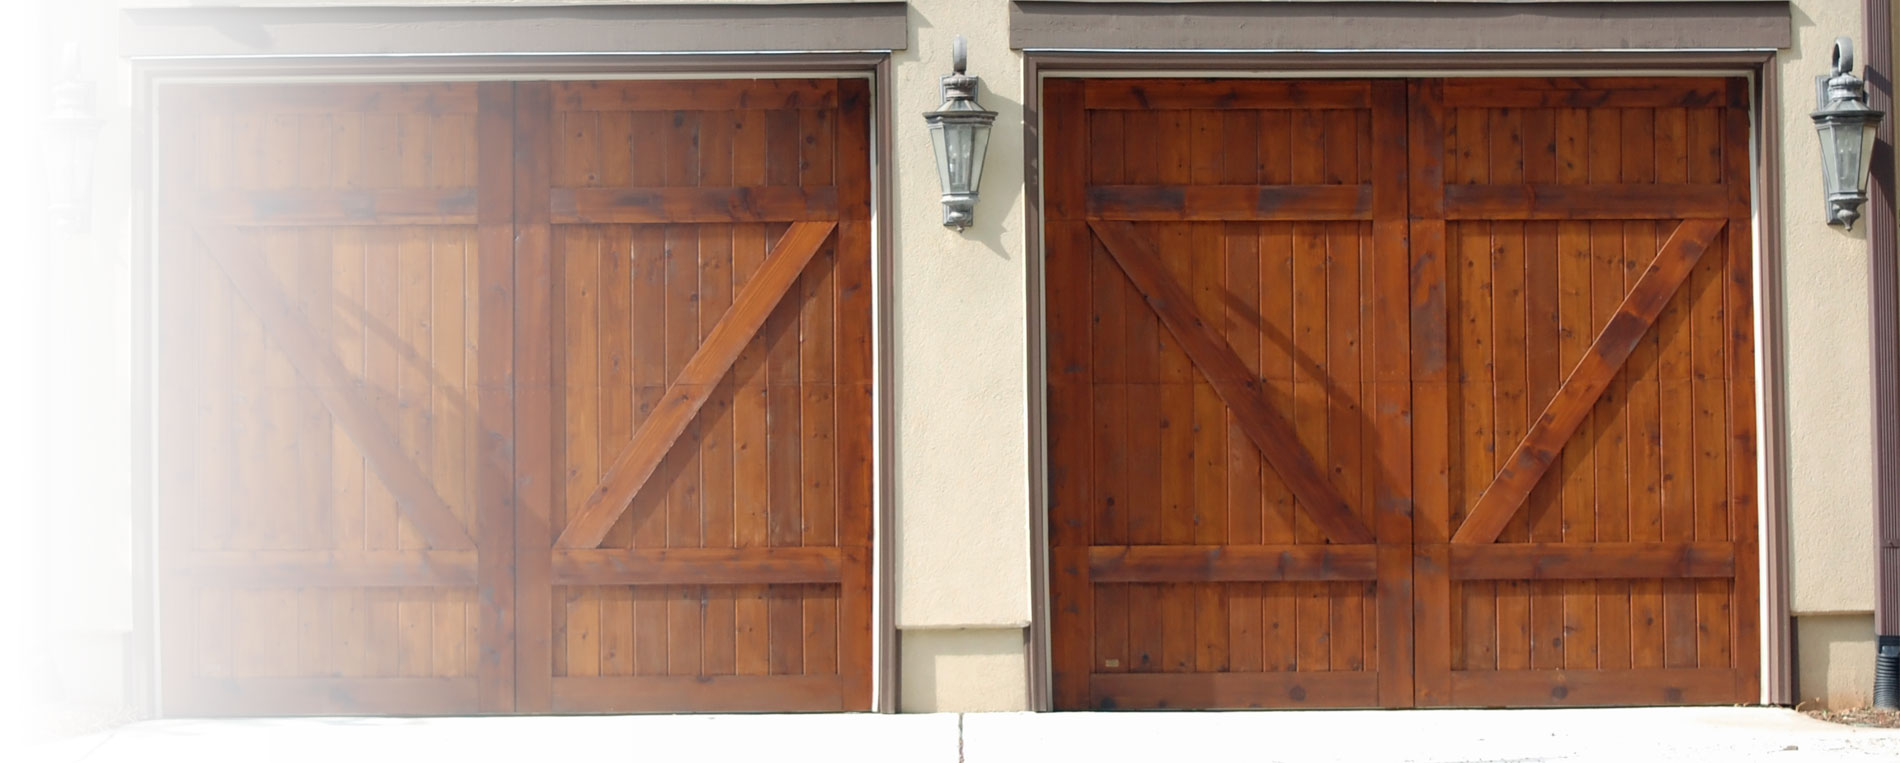 Garage Door Repair Sandy Springs, GA